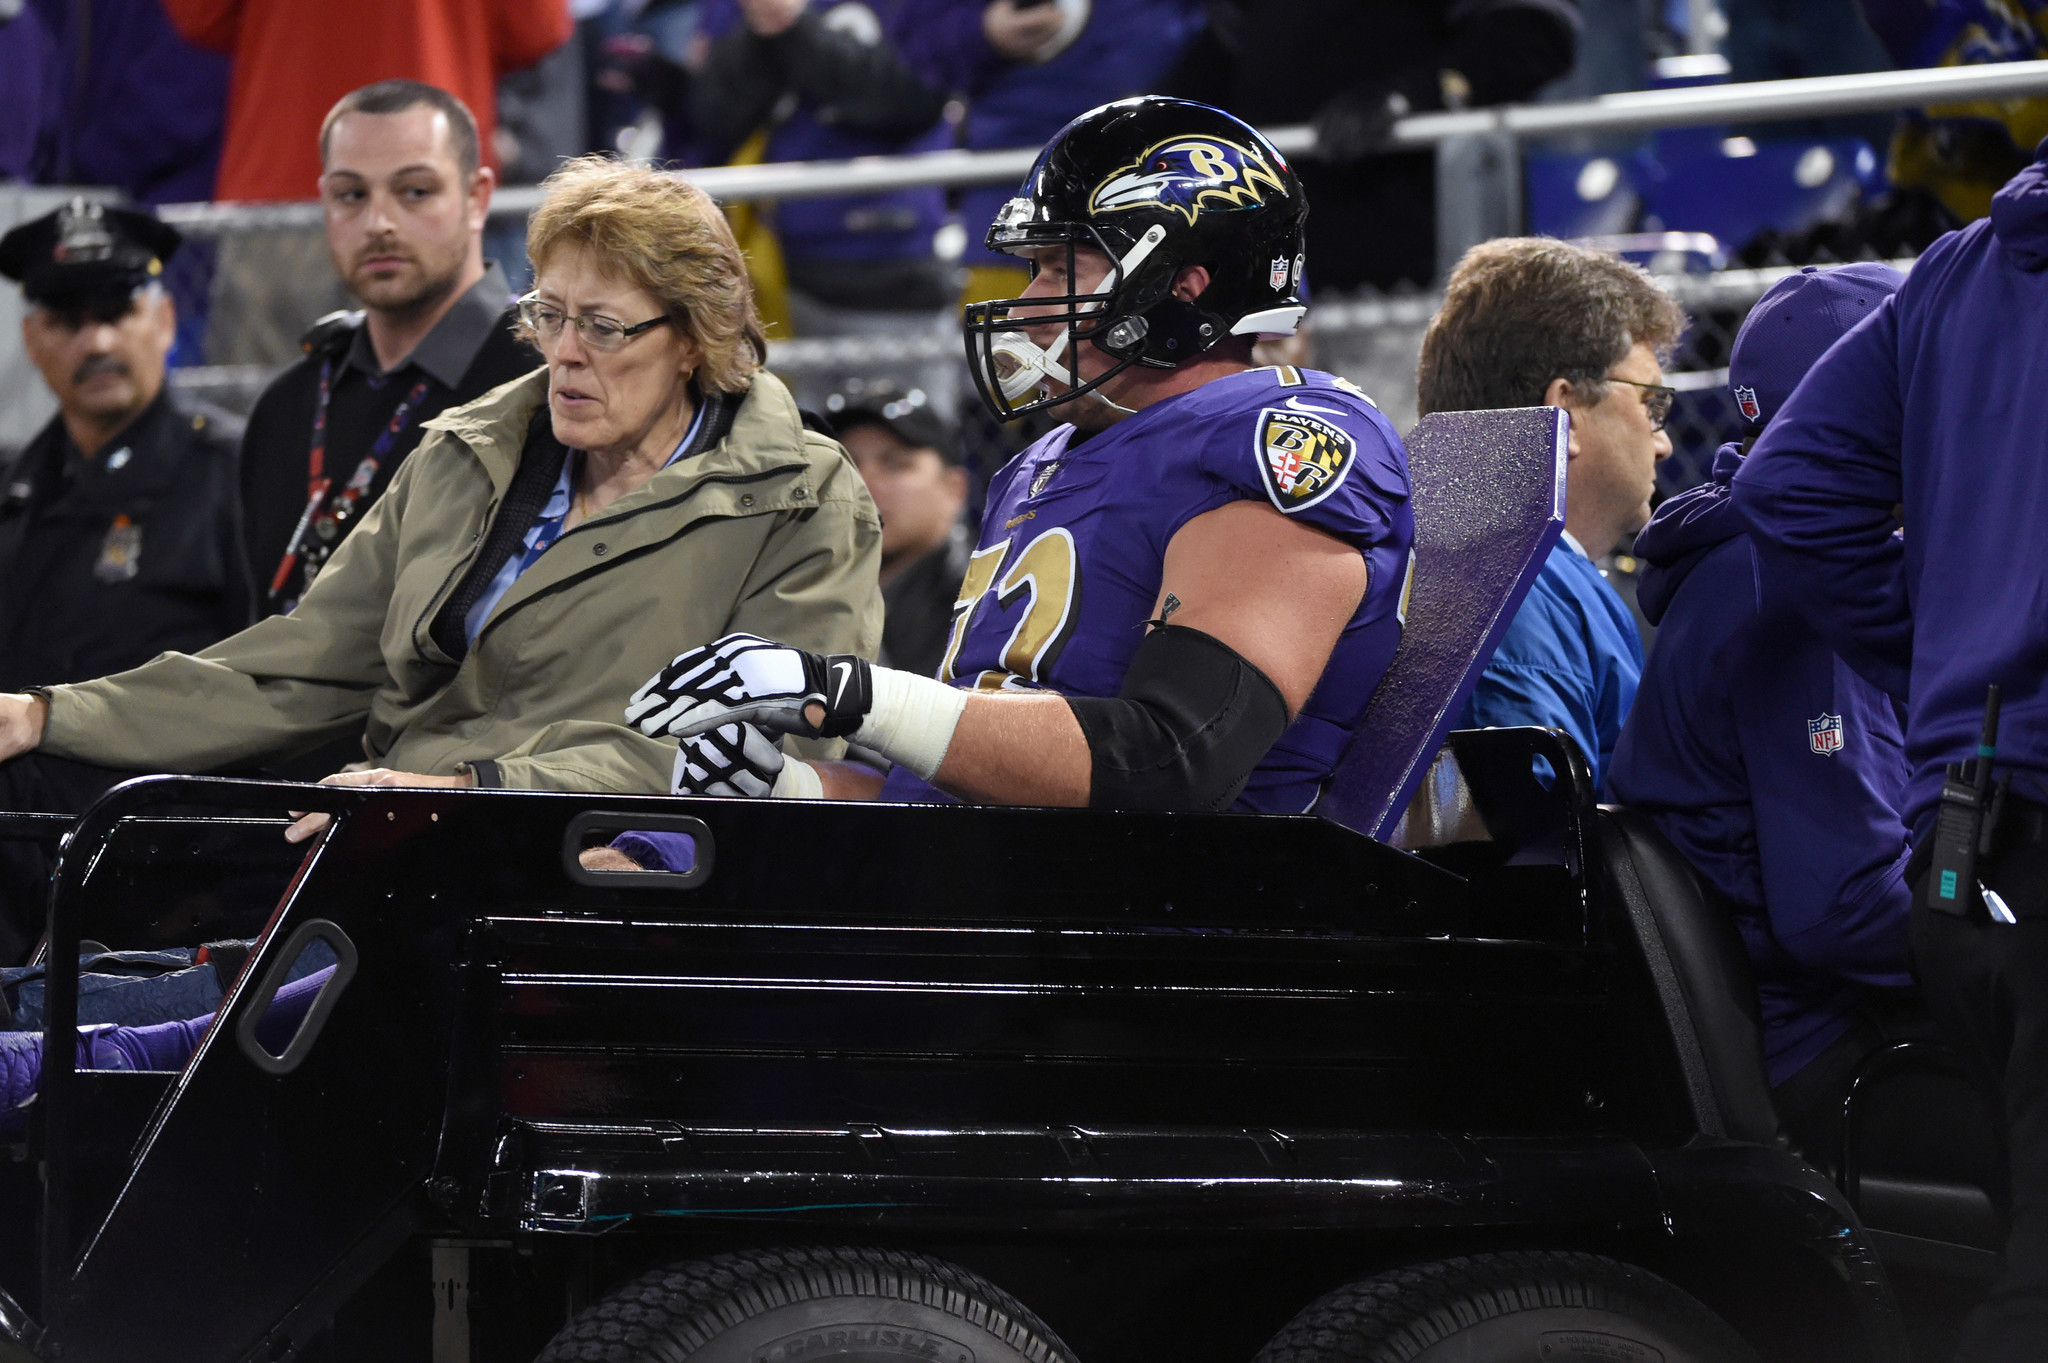 Bal-ravens-notes-alex-lewis-goes-down-with-an-ankle-injury-adding-another-concern-for-o-line-20161110